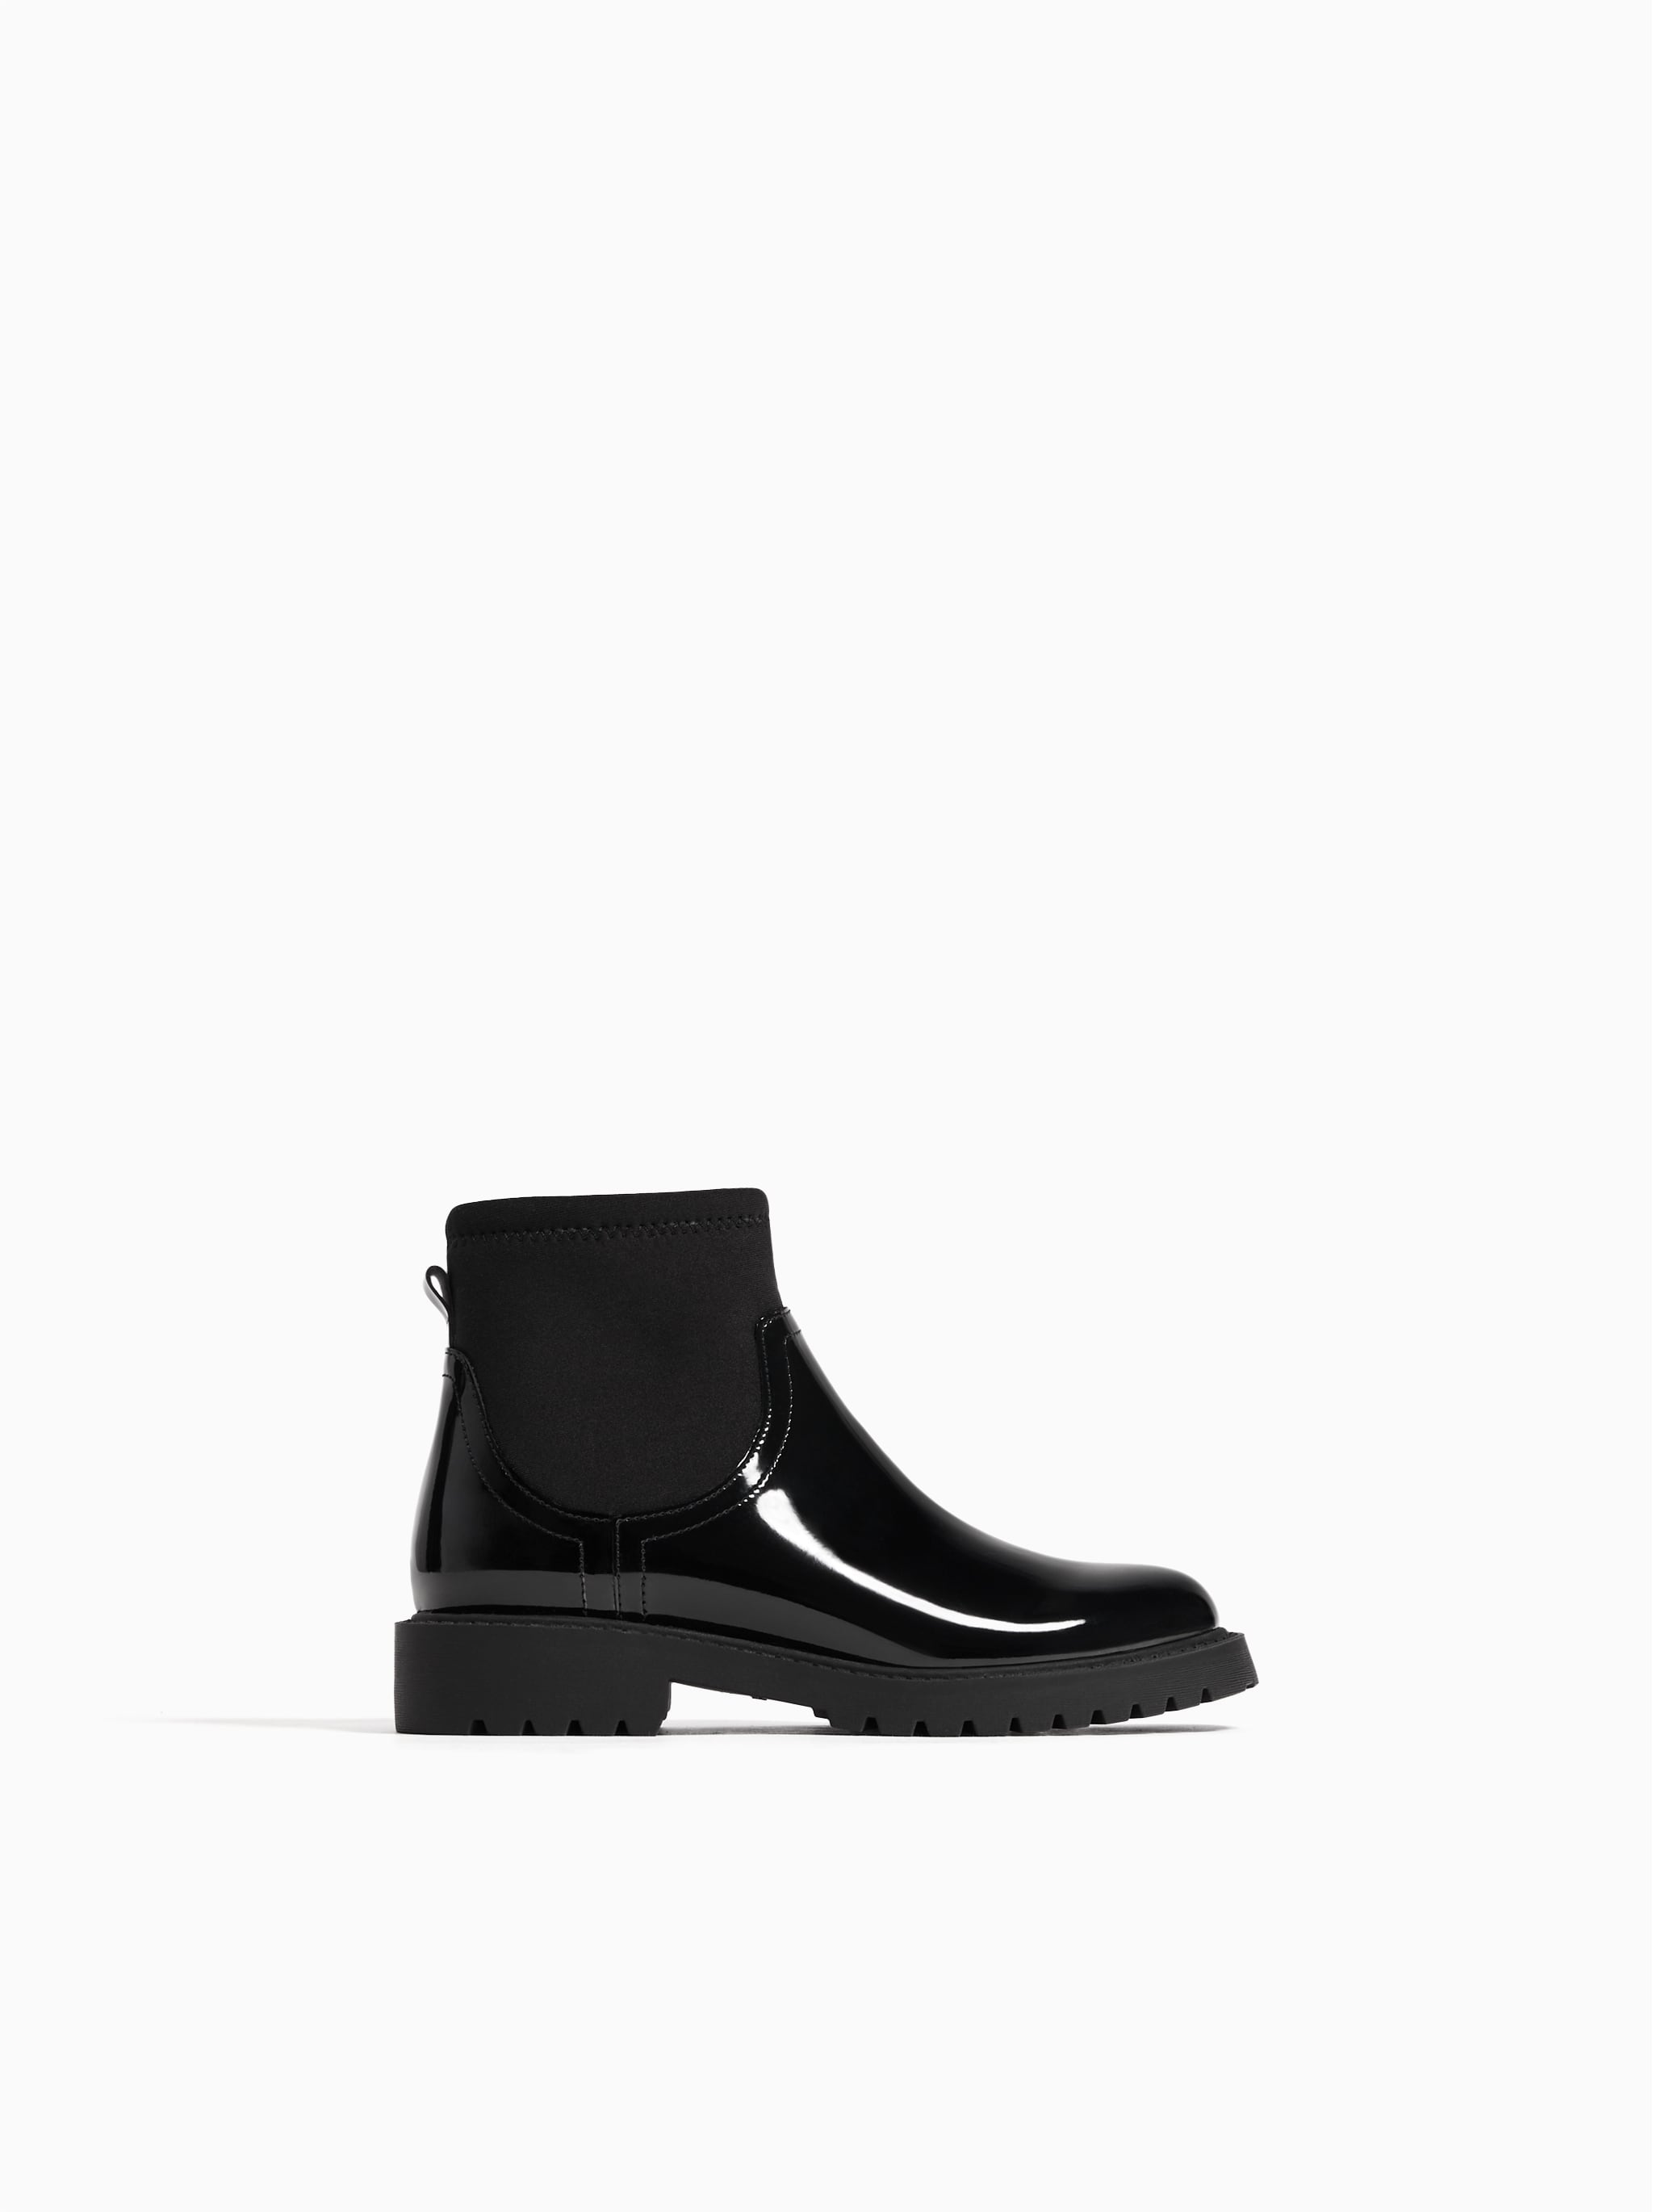 5d2ff5fa Zara PATENT FINISH ANKLE BOOTS